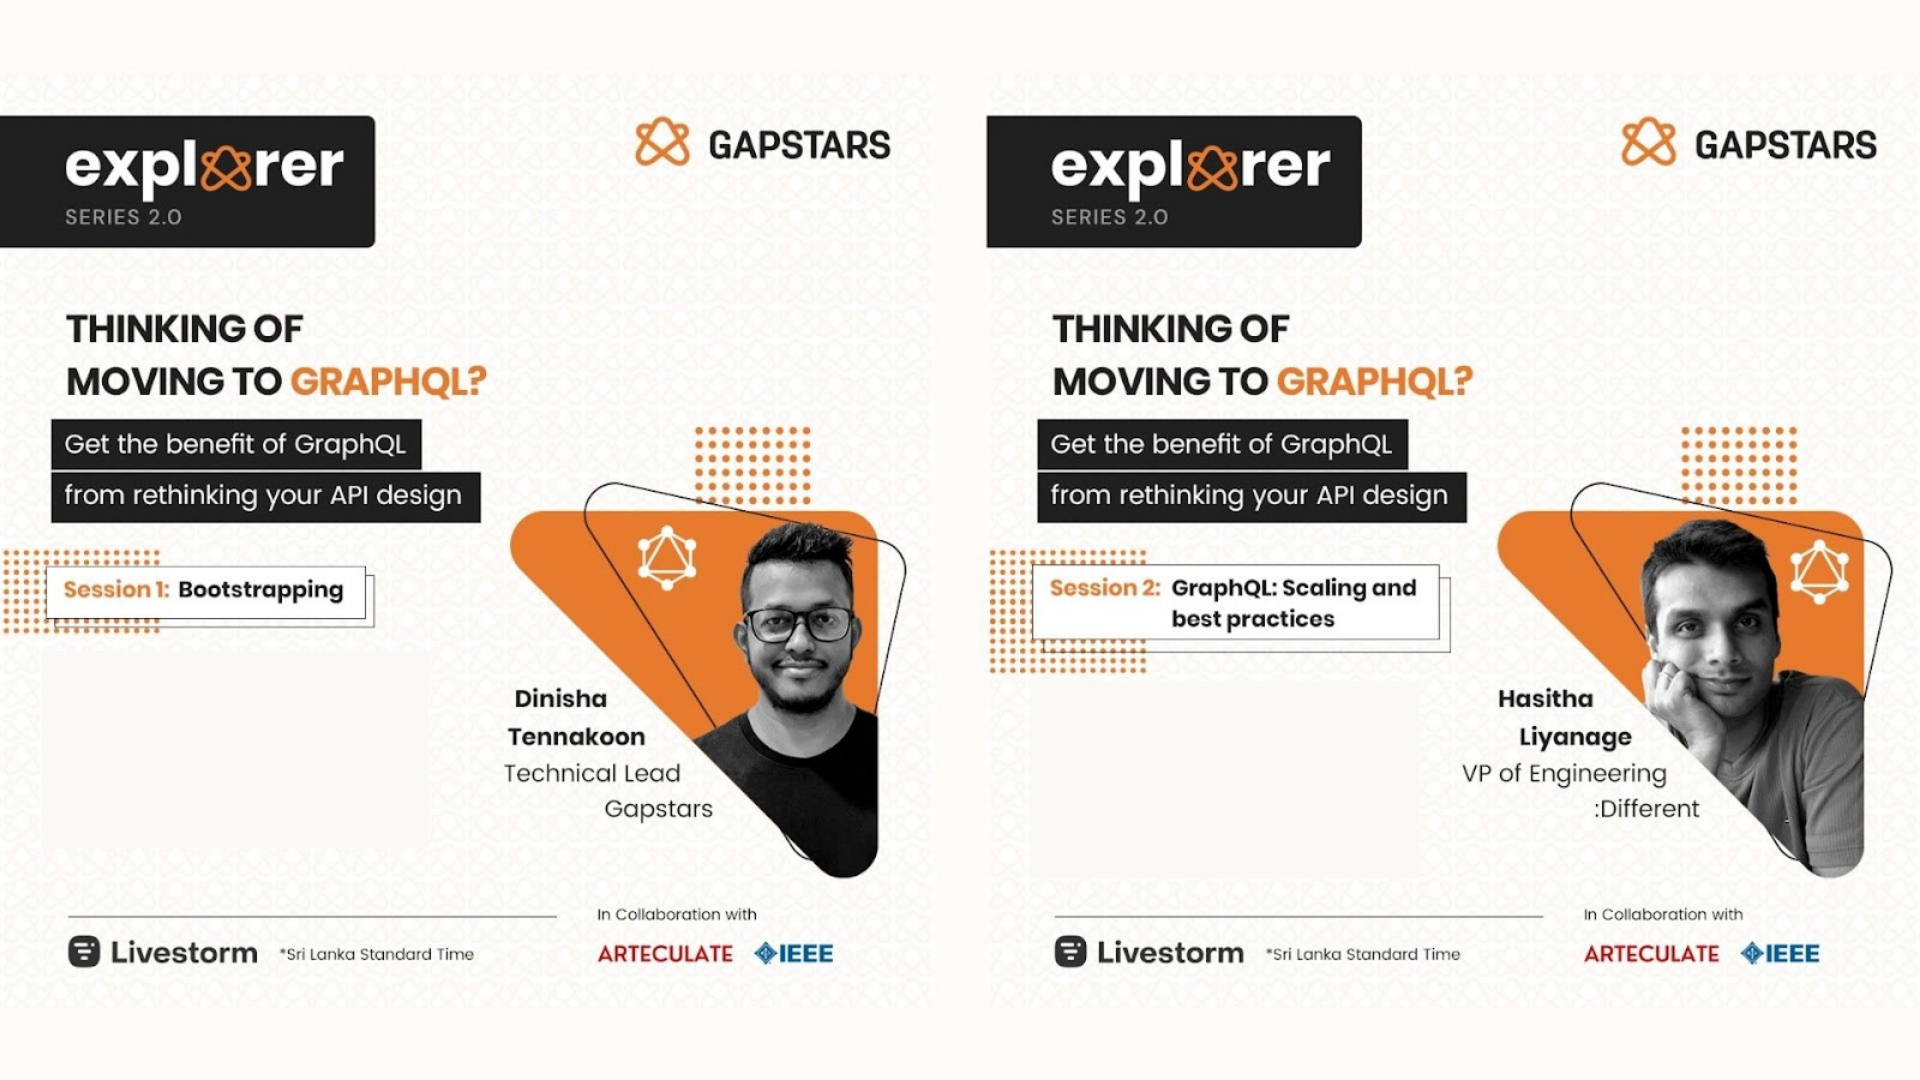 Explorer Series 2.0: Your Introductory Guide to GraphQL 1